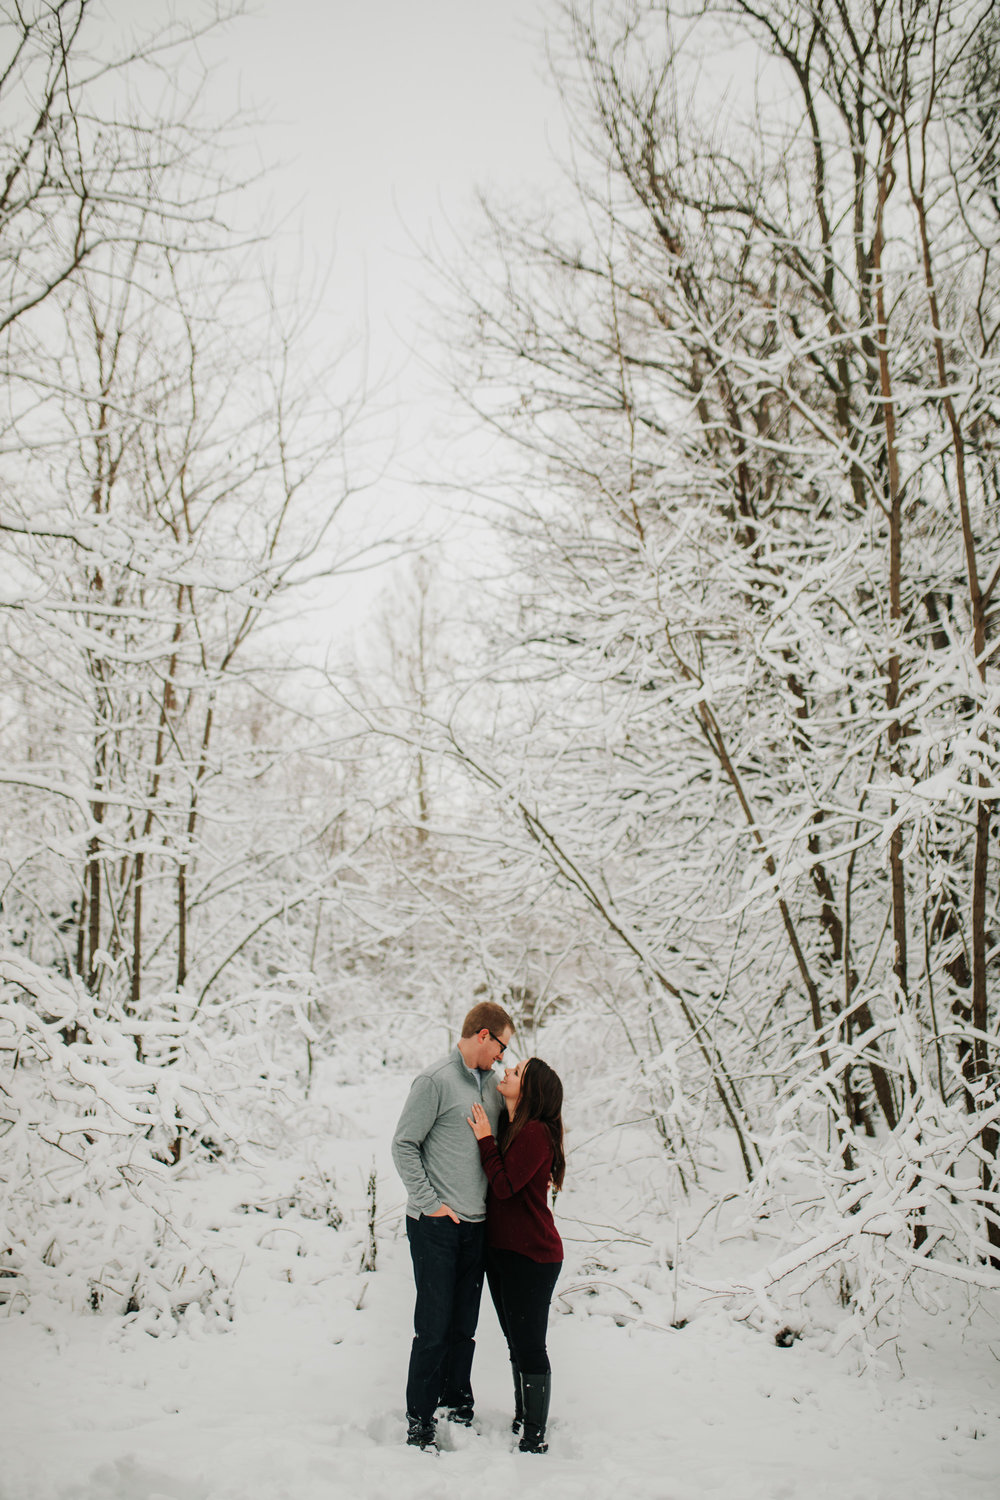 Vanessa & Dan - Engaged - Nathaniel Jensen Photography - Omaha Nebraska Wedding Photographer - Standing Bear Lake - Snowy Engagement Session-73.jpg